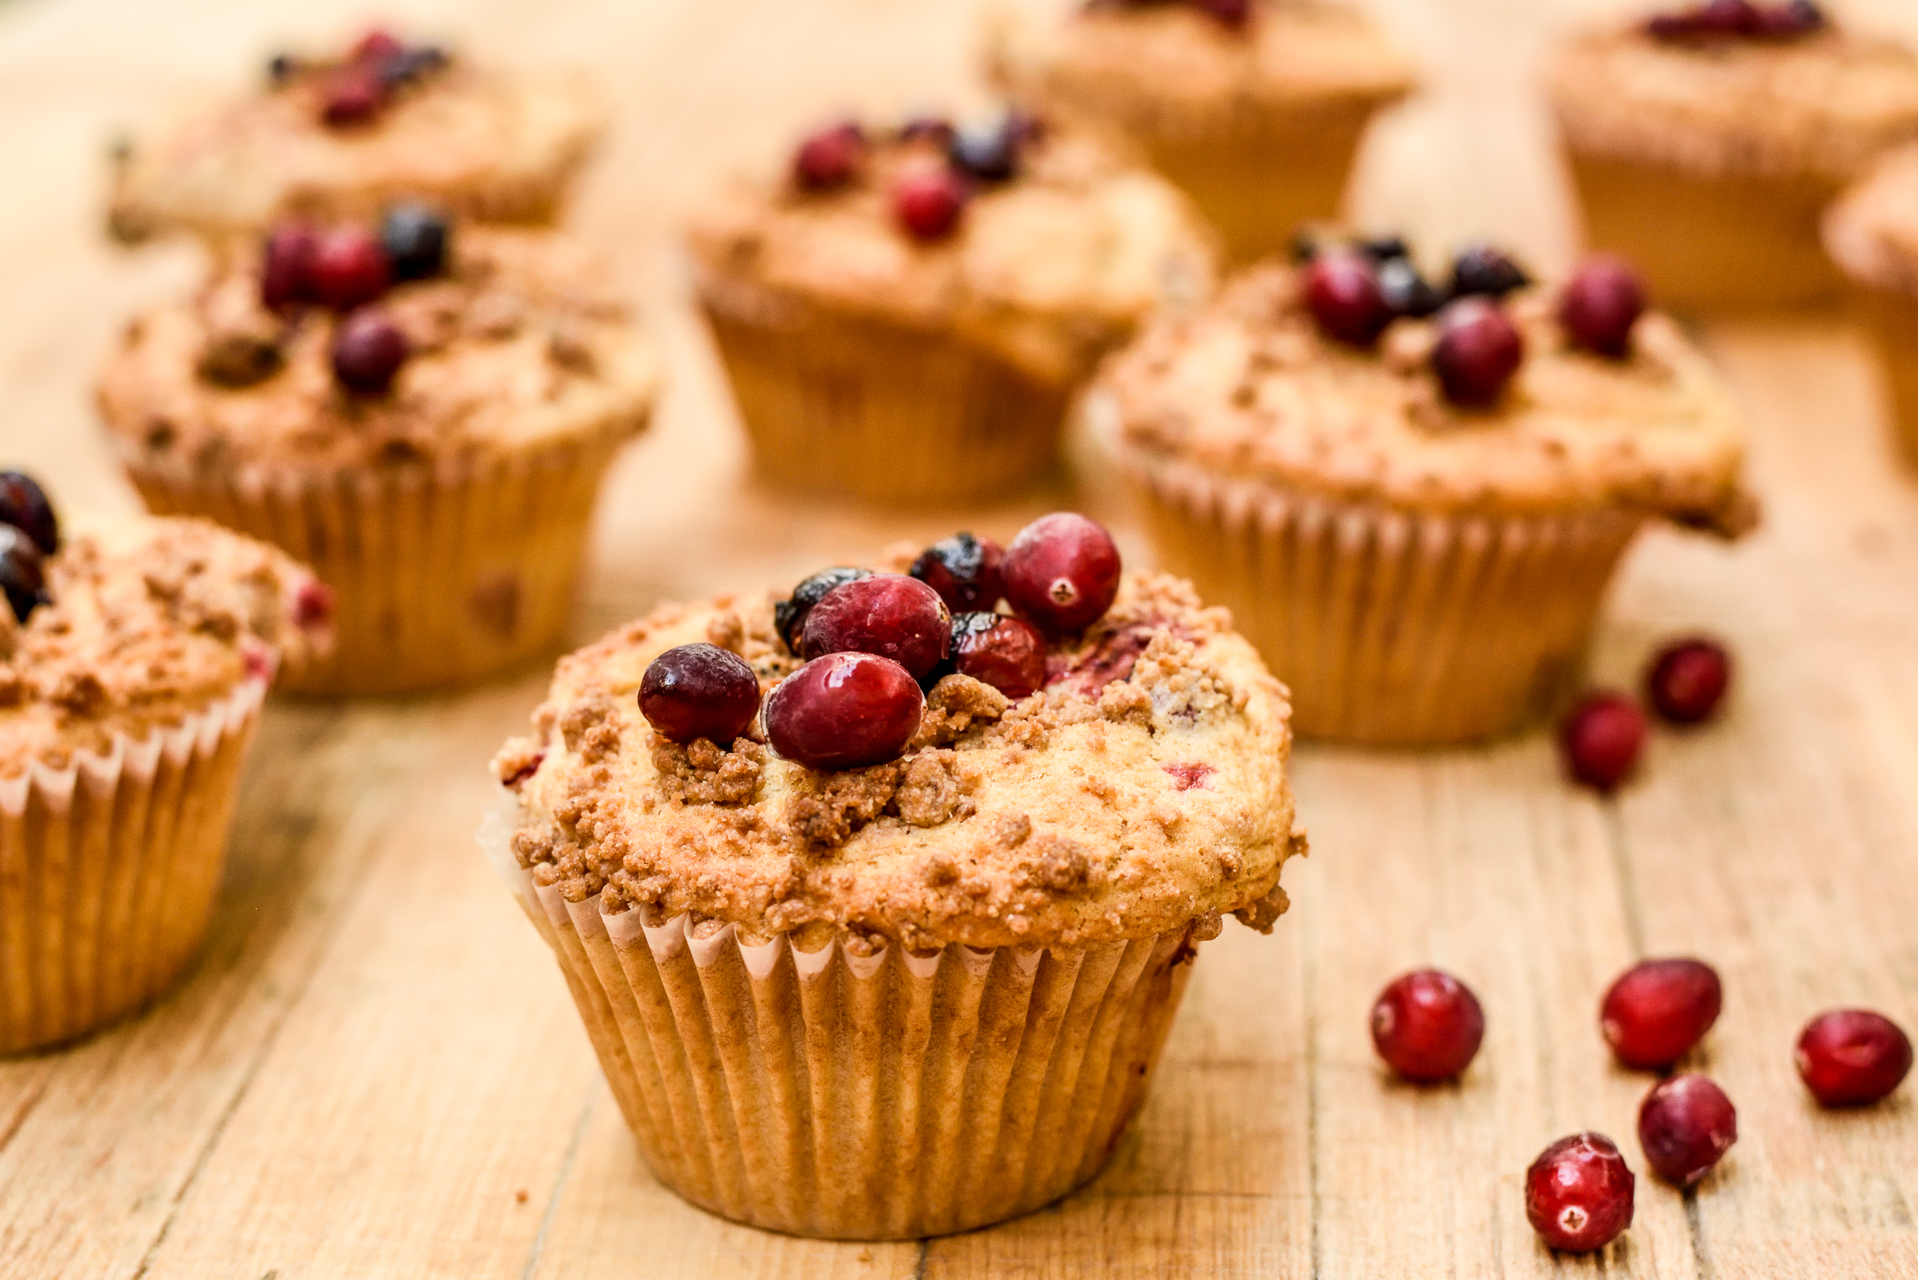 Copy of Cranberry Crumble Muffin